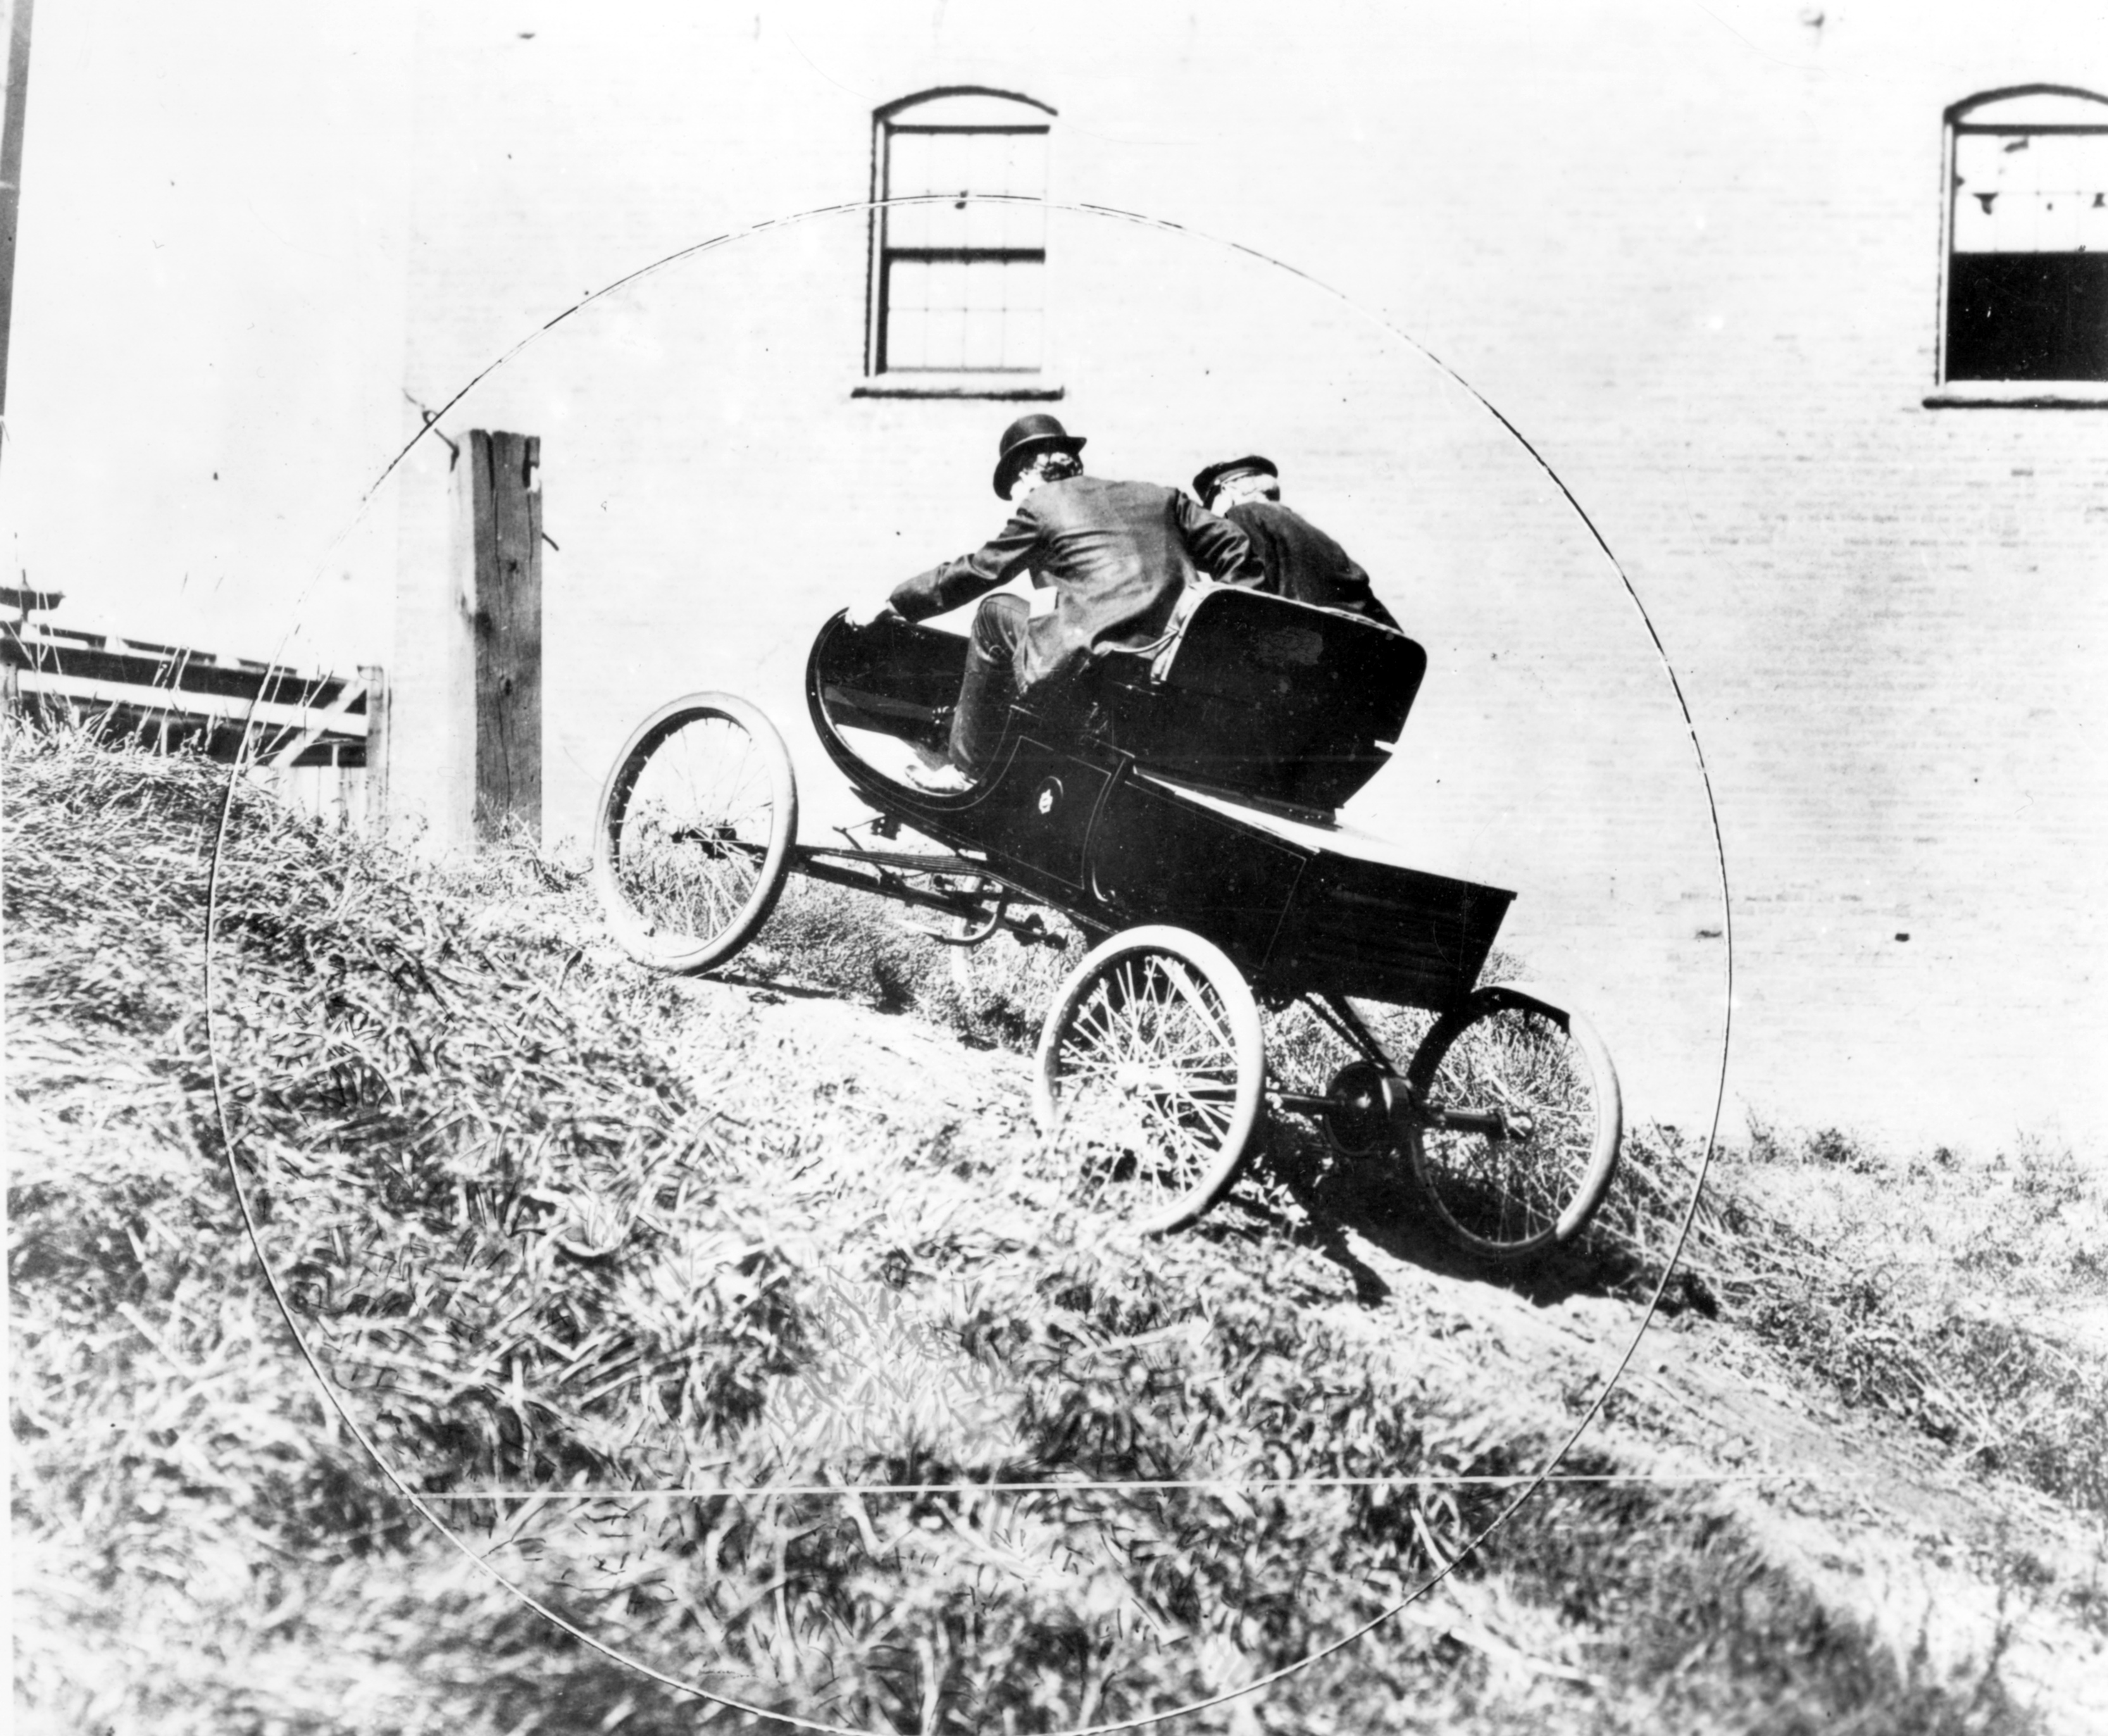 Black and white photograph of two men in a rudimentary automobile driving up a hill.